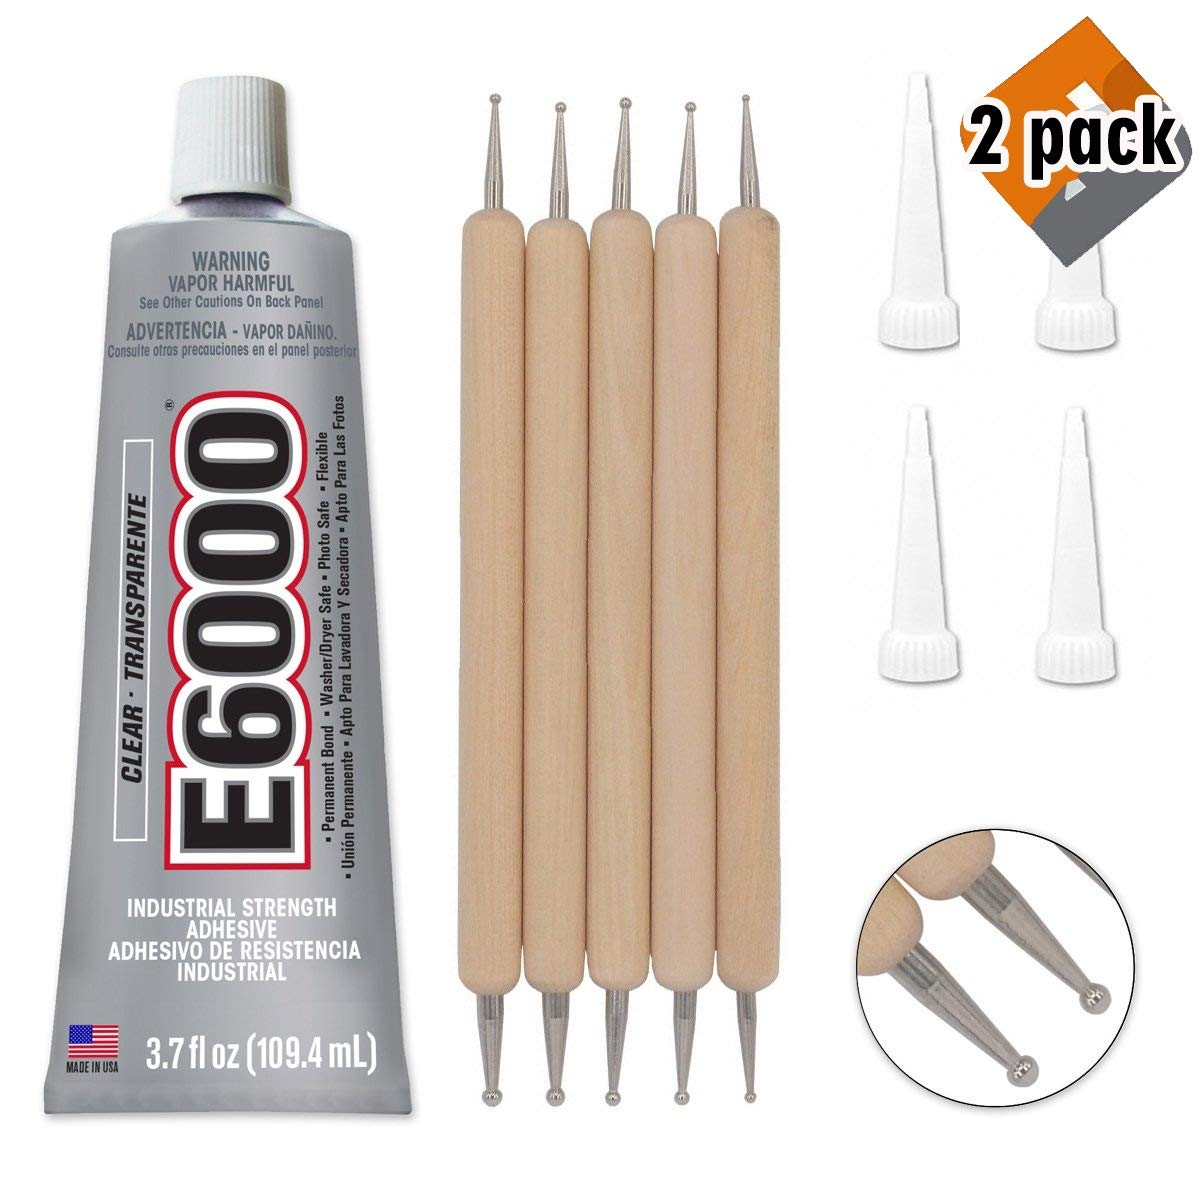 Bundle - E6000 3.7 Ounce (109.4mL) Tube Industrial Strength Adhesive for Crafting, 4 Snip Tip Applicator Tips and Pixiss Art Dotting Stylus Pens 5 pcs Set, 2 Pack by Bundled Brands